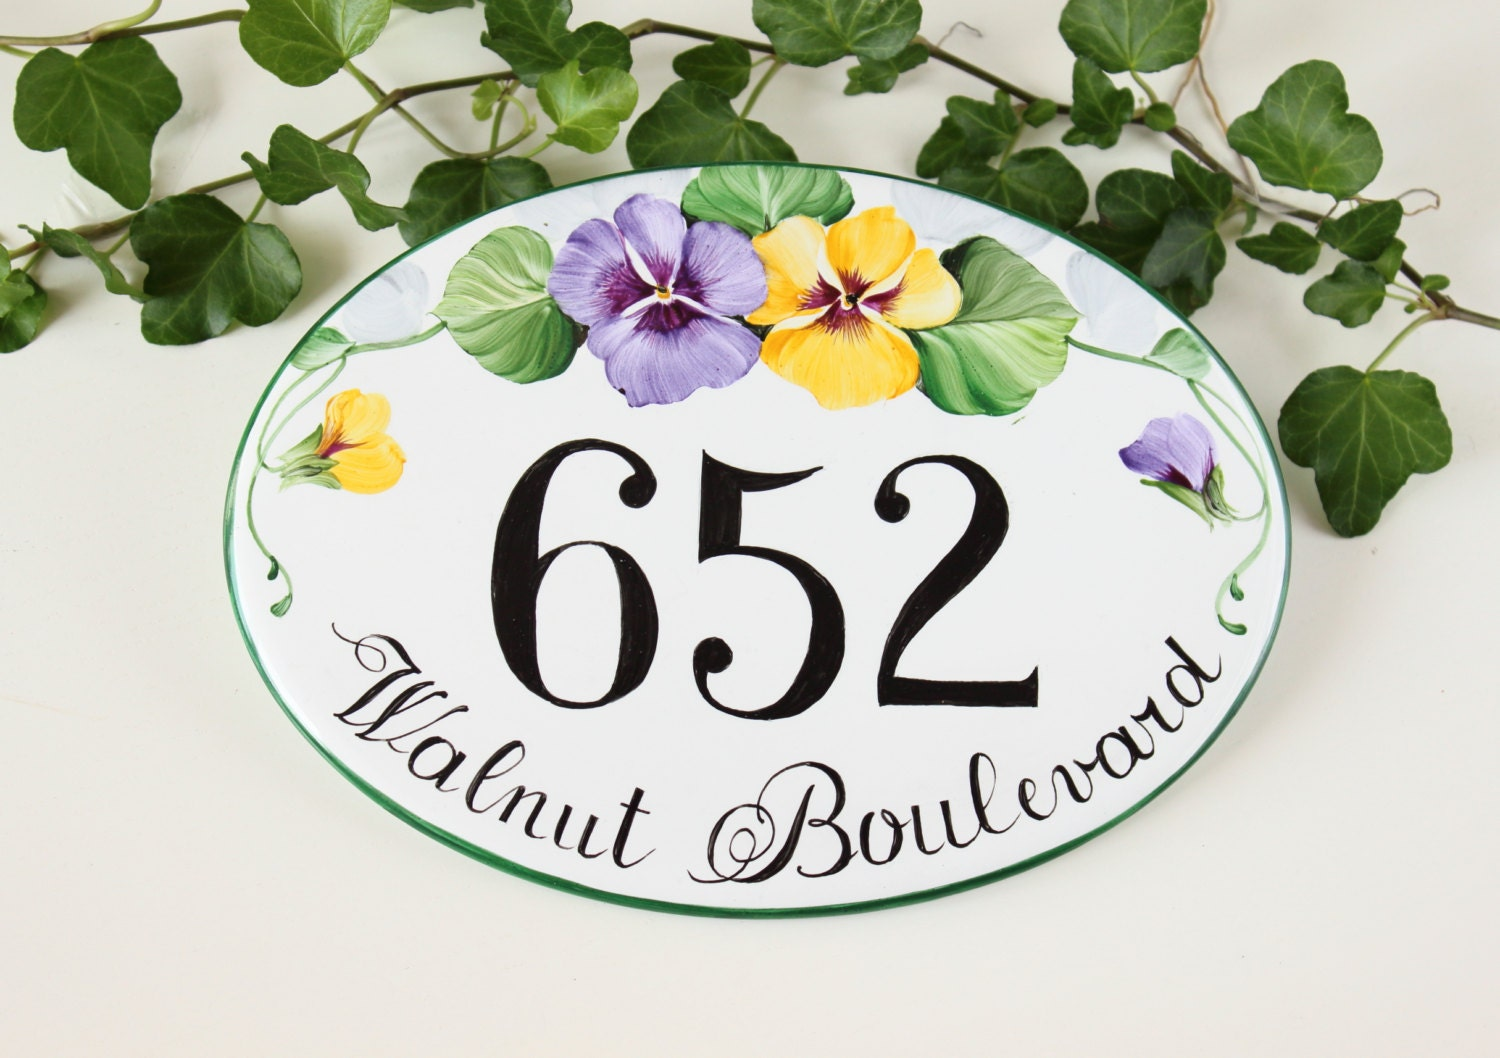 partment Door Signs: Unique house numbers related items tsy. New ... - ^